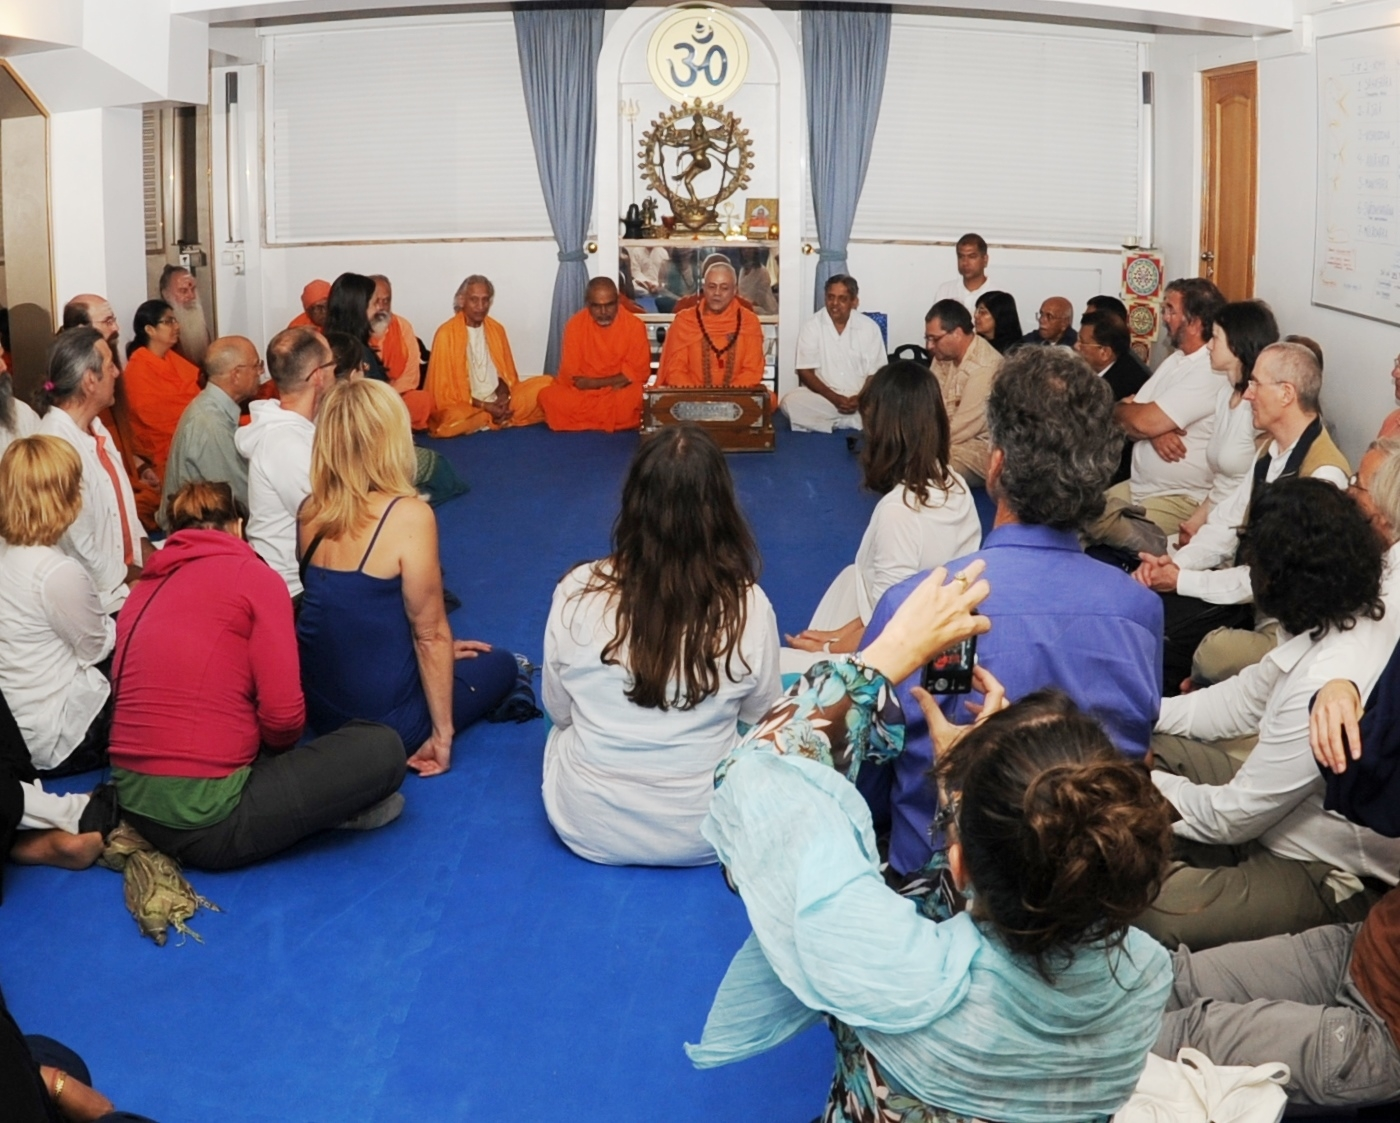 Reception of the Invited Masters to the International Day of Yoga at the Headquarters of the Portuguese Yoga Confederation, Lisboa – 2013